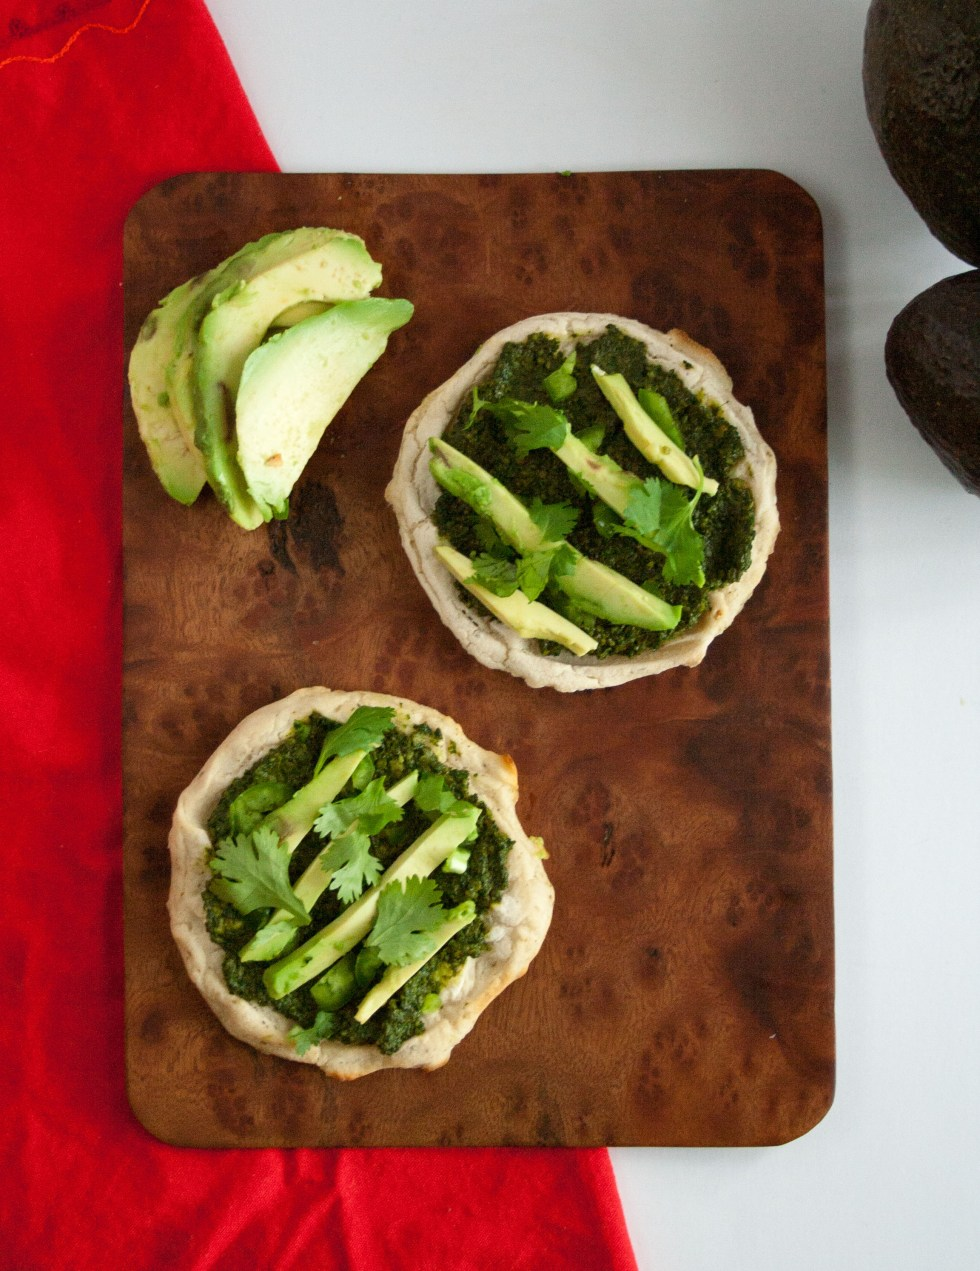 Mini Pizzas with Cilantro Pesto and Avocado - These vegan gluten free pizzas are not only cute, but perfect for a party or as an appetizer.